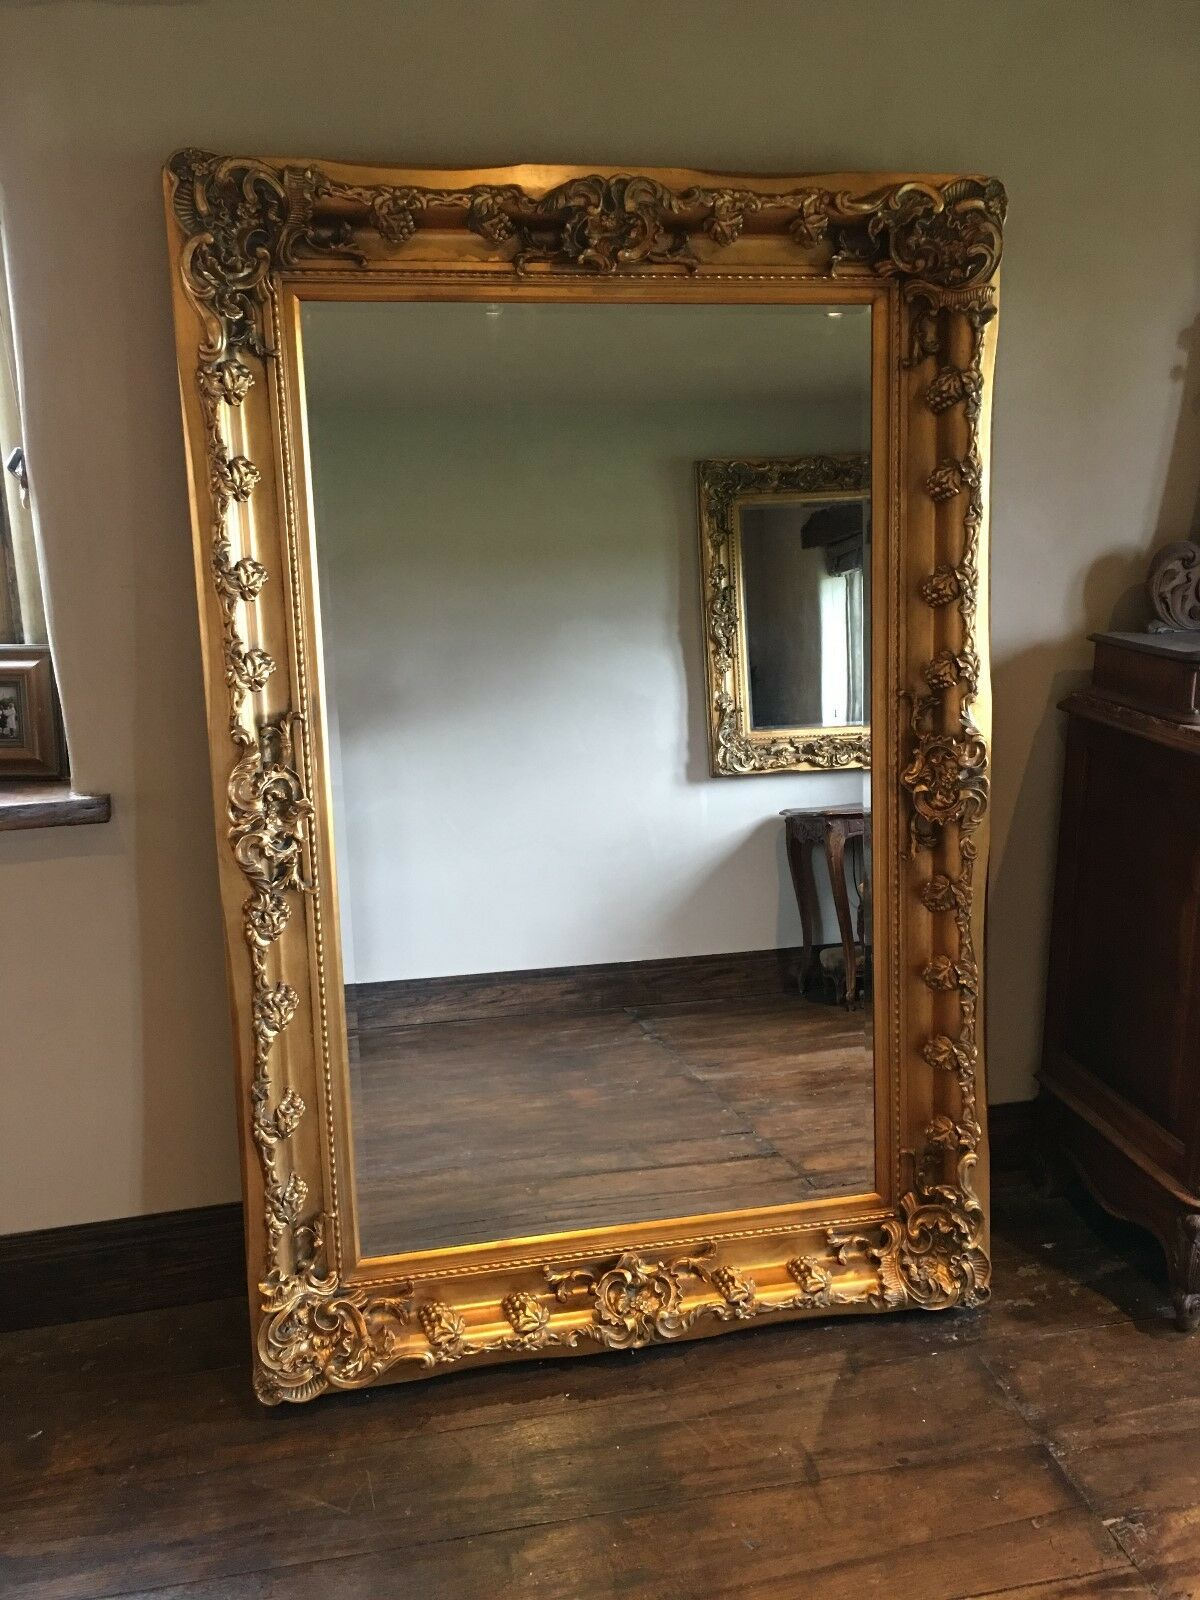 96fc1cf119d4 Details about Antique Gold Large French Leaner Ornate Wall Statement Dress  Tall Floor Mirror